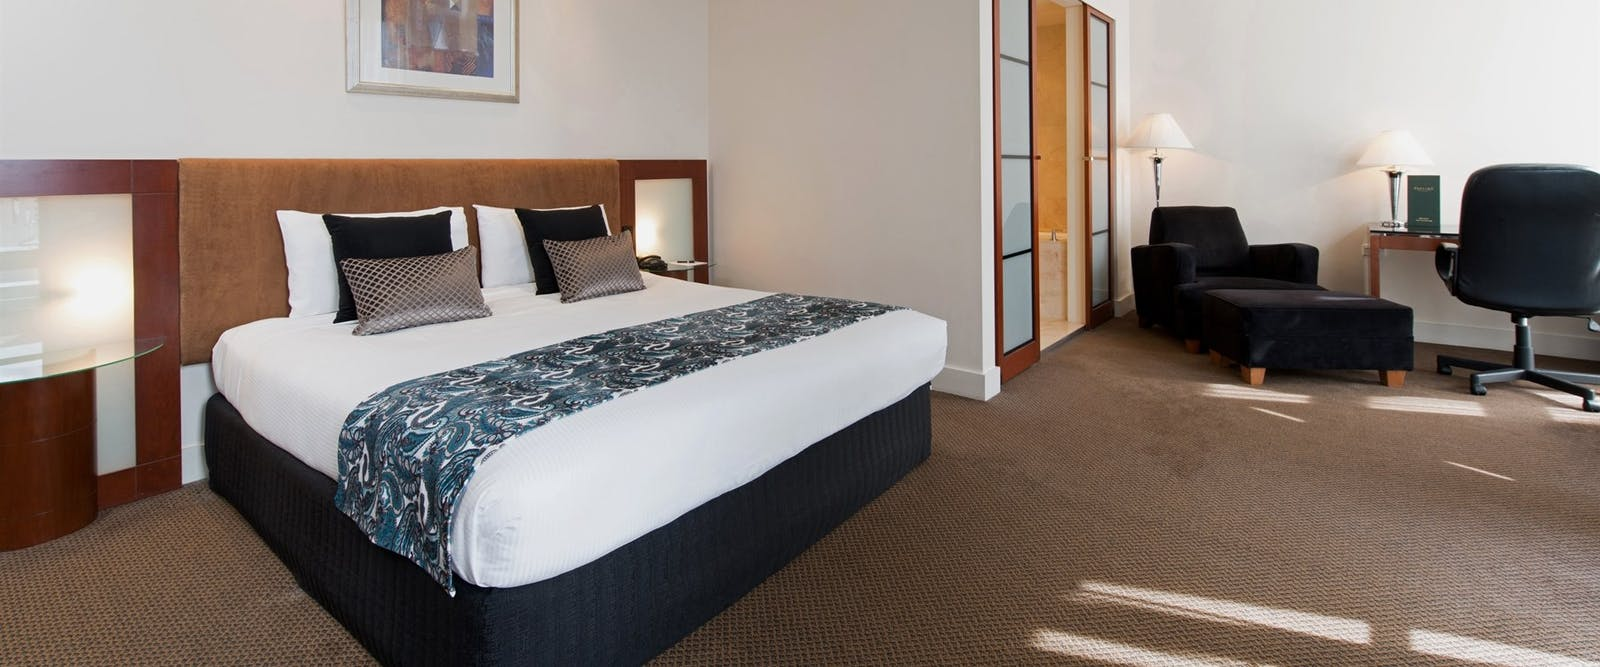 Deluxe hotel room, Peppers Waymouth Hotel, Adelaide